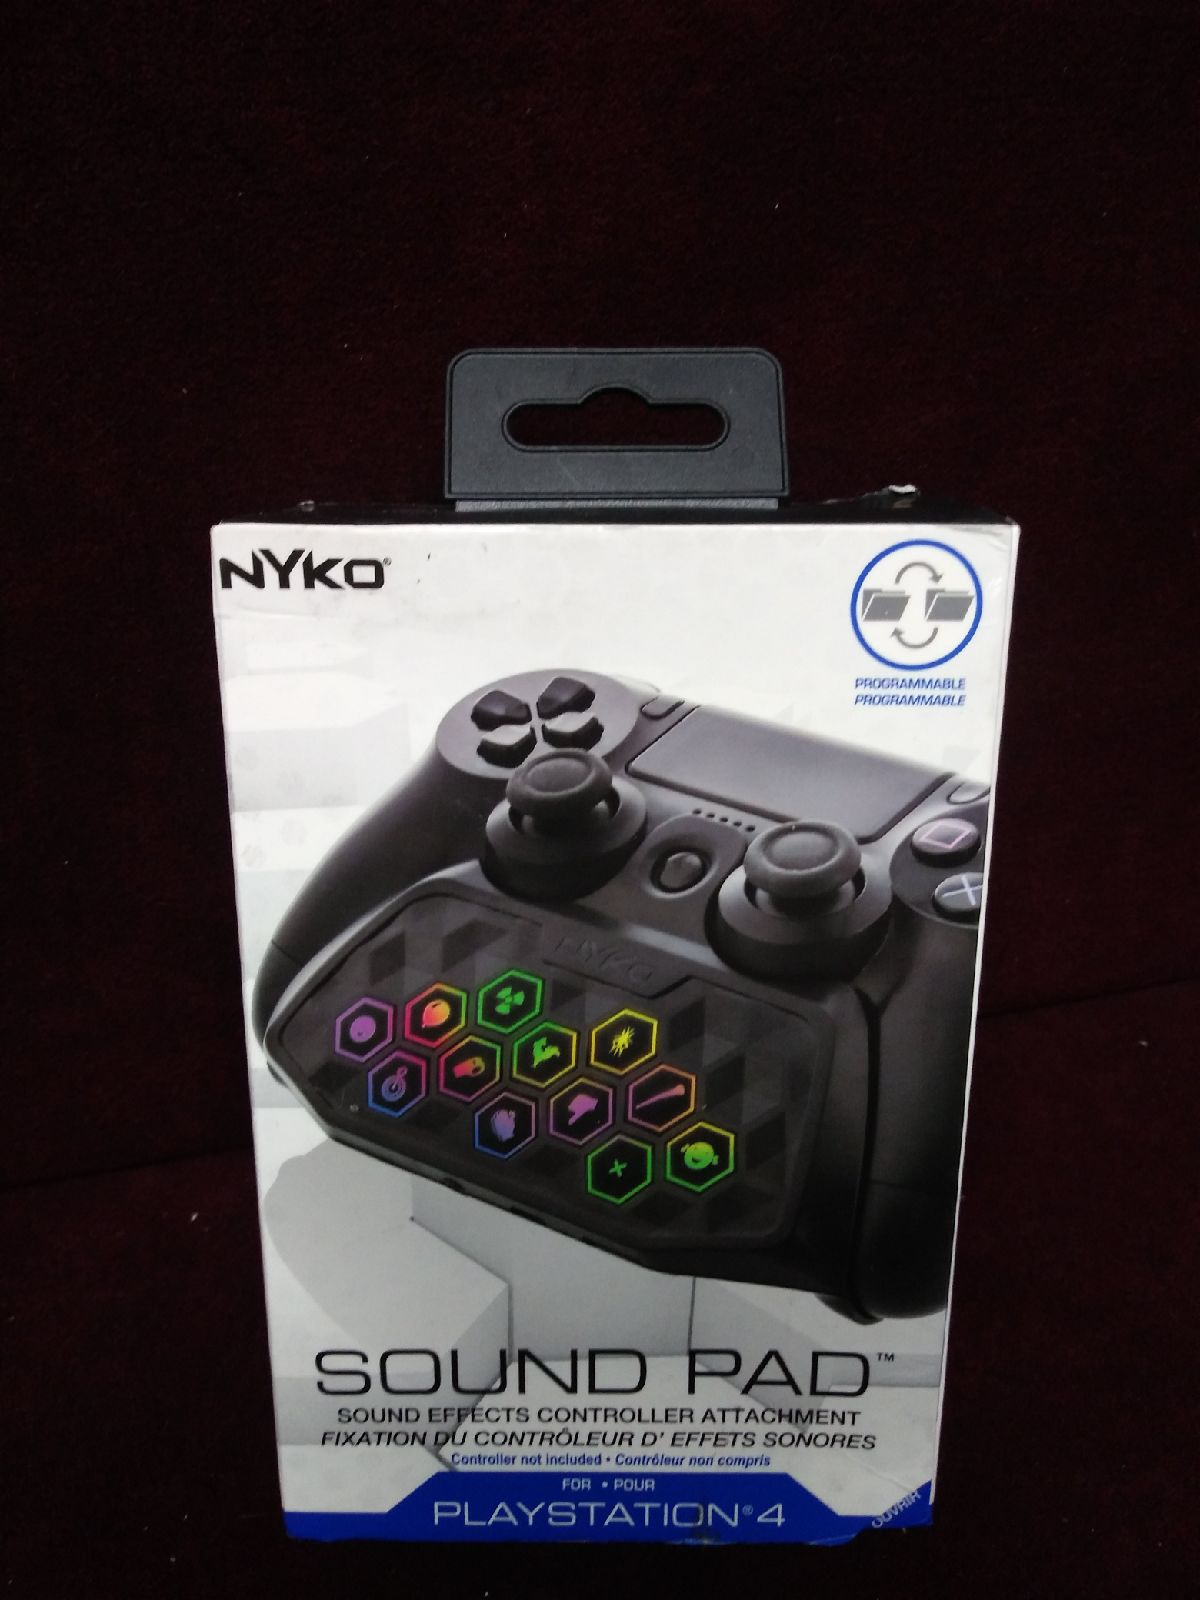 Nyko Sound Pad controller attachment